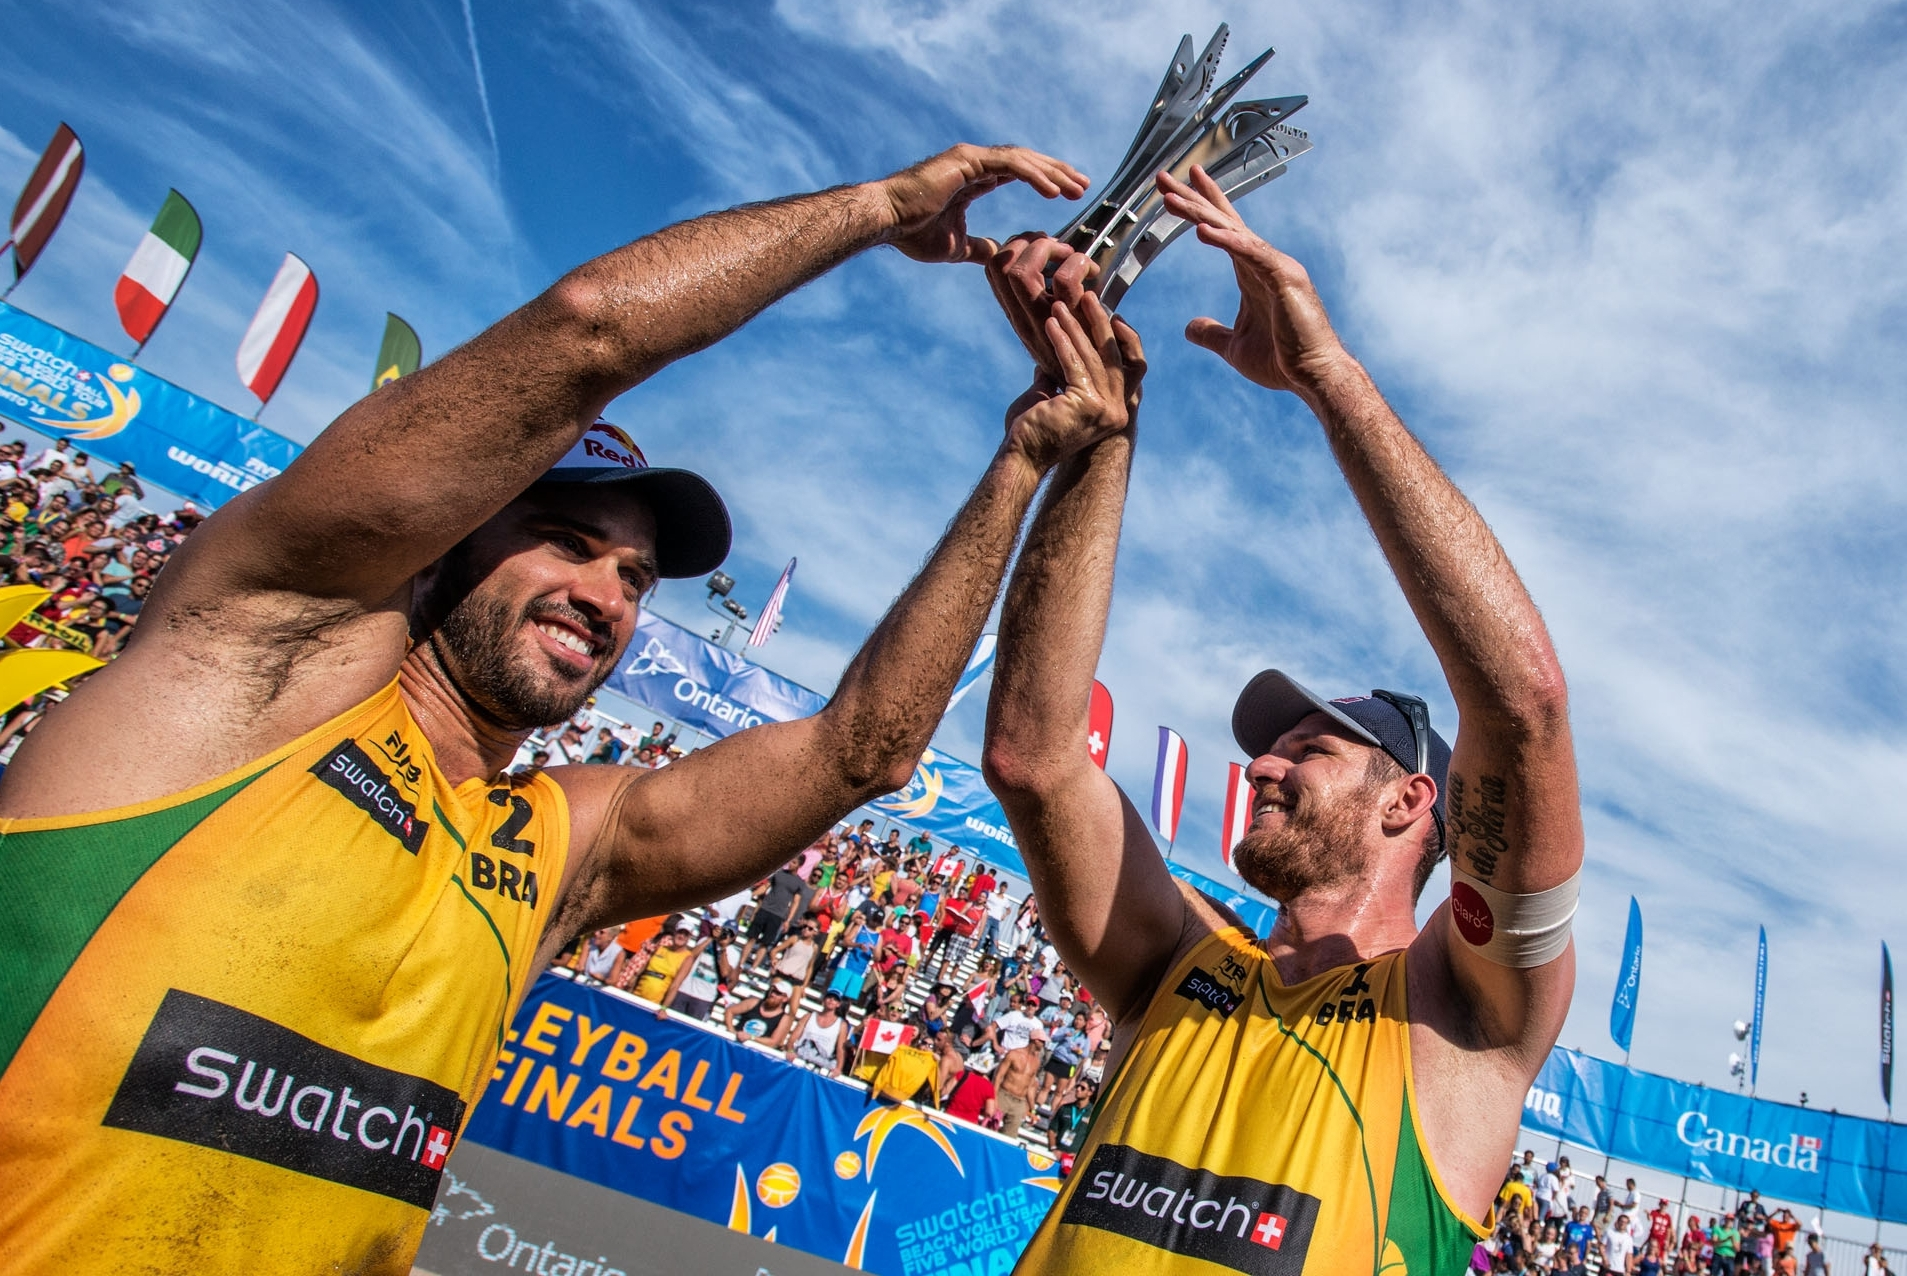 Bruno Oscar Schmidt (left) and Alison Cerutti won a second successive Swatch World Tour Finals title. Photocredit: Mihai Stetcu.